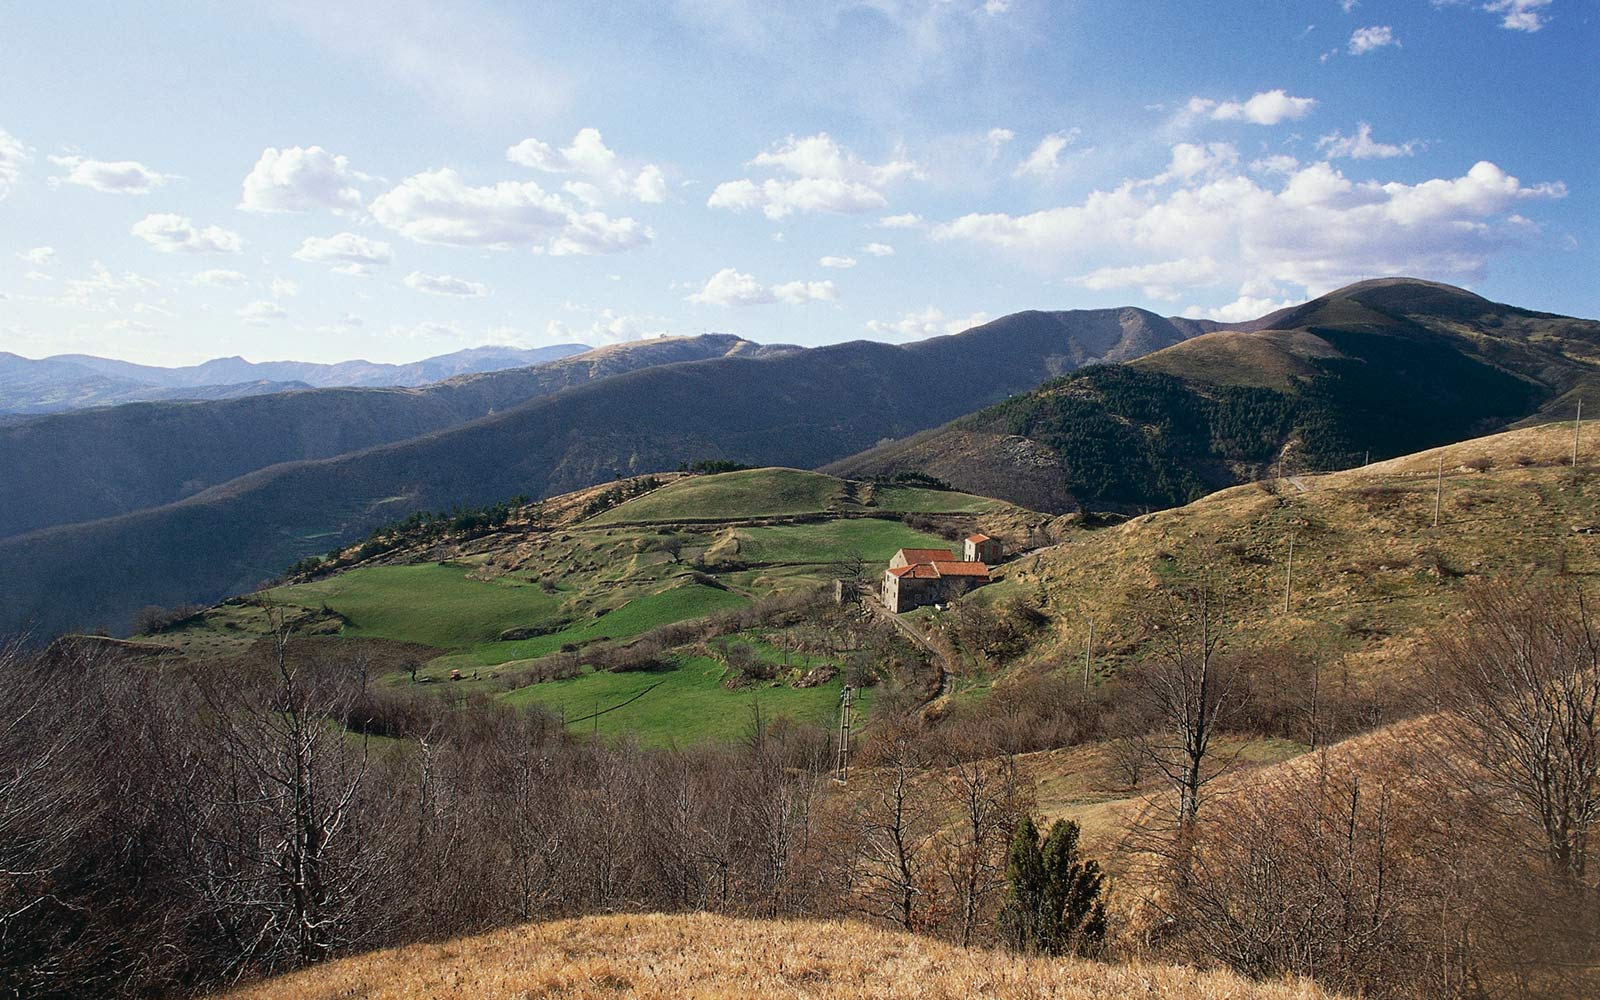 Get paid €2,000 to move to this charming Italian village